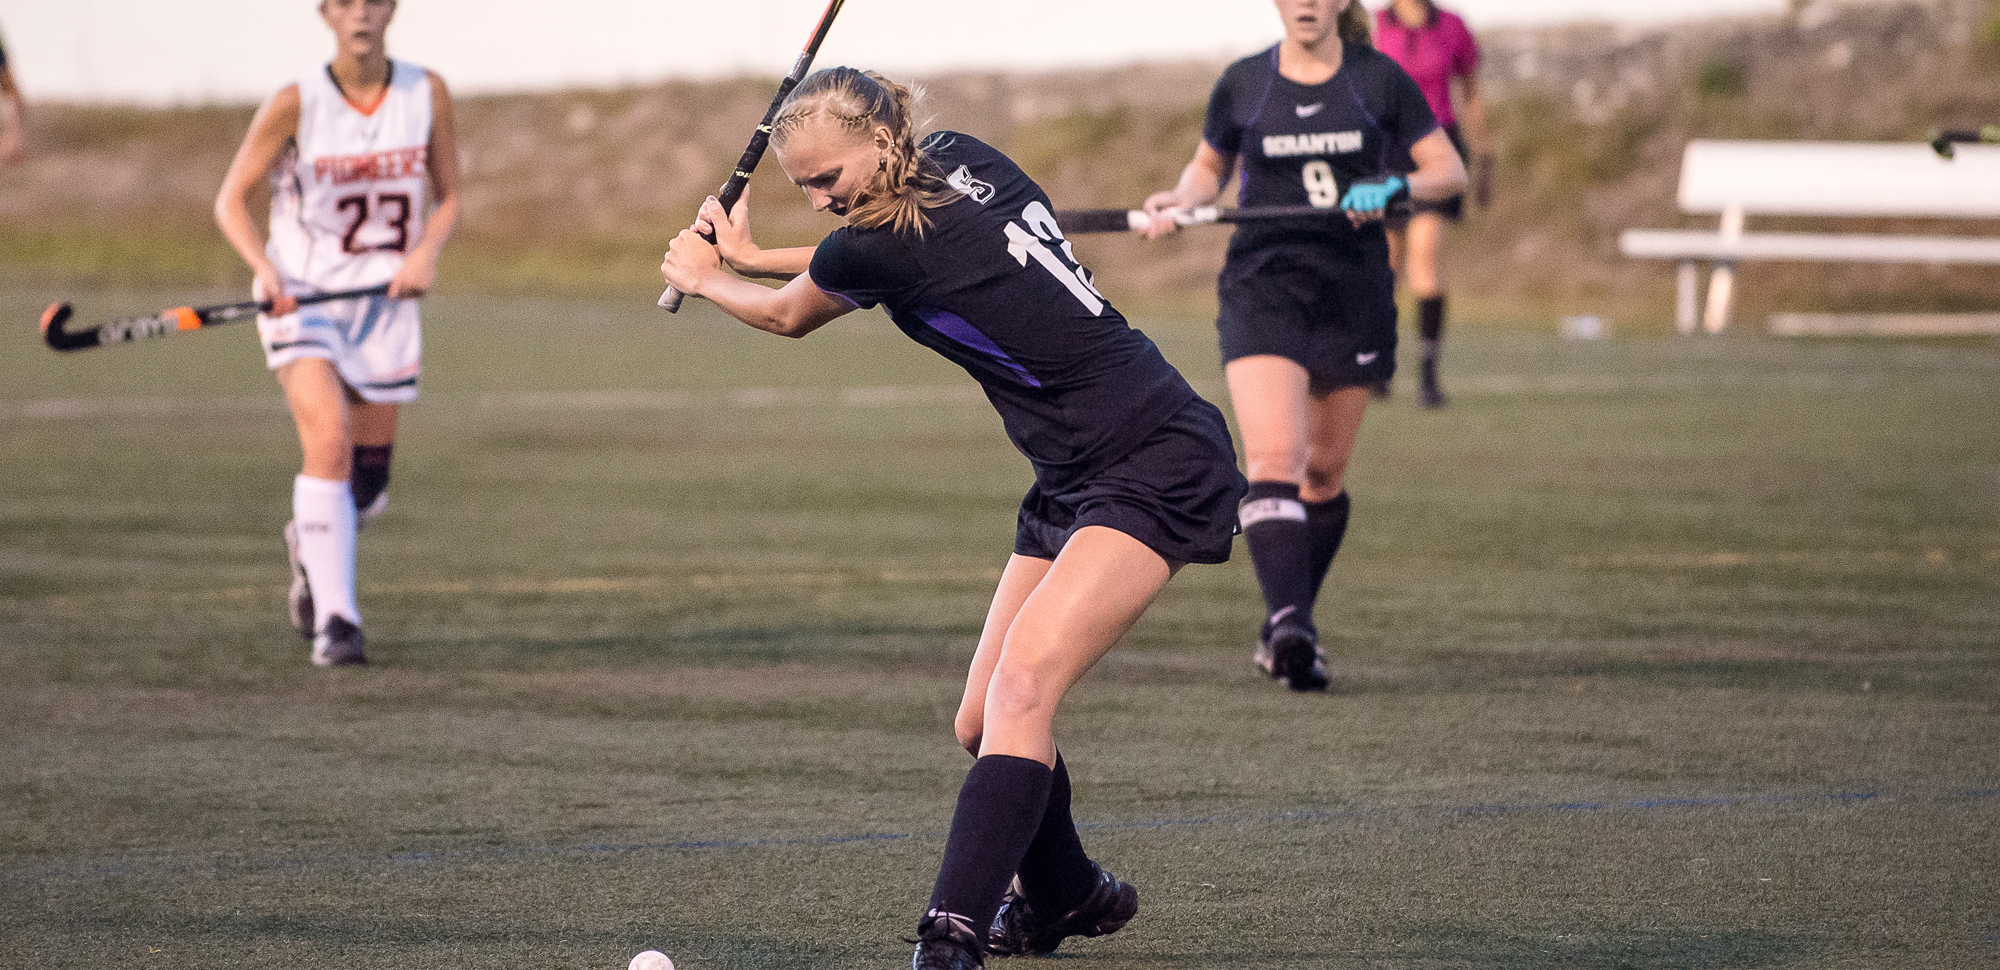 Junior Elizabeth Tolley scored the first goal of the contest in the sixth minute, giving the Royals a lead that would not relinquish in a 5-0 victory at home over Drew on Wednesday night.